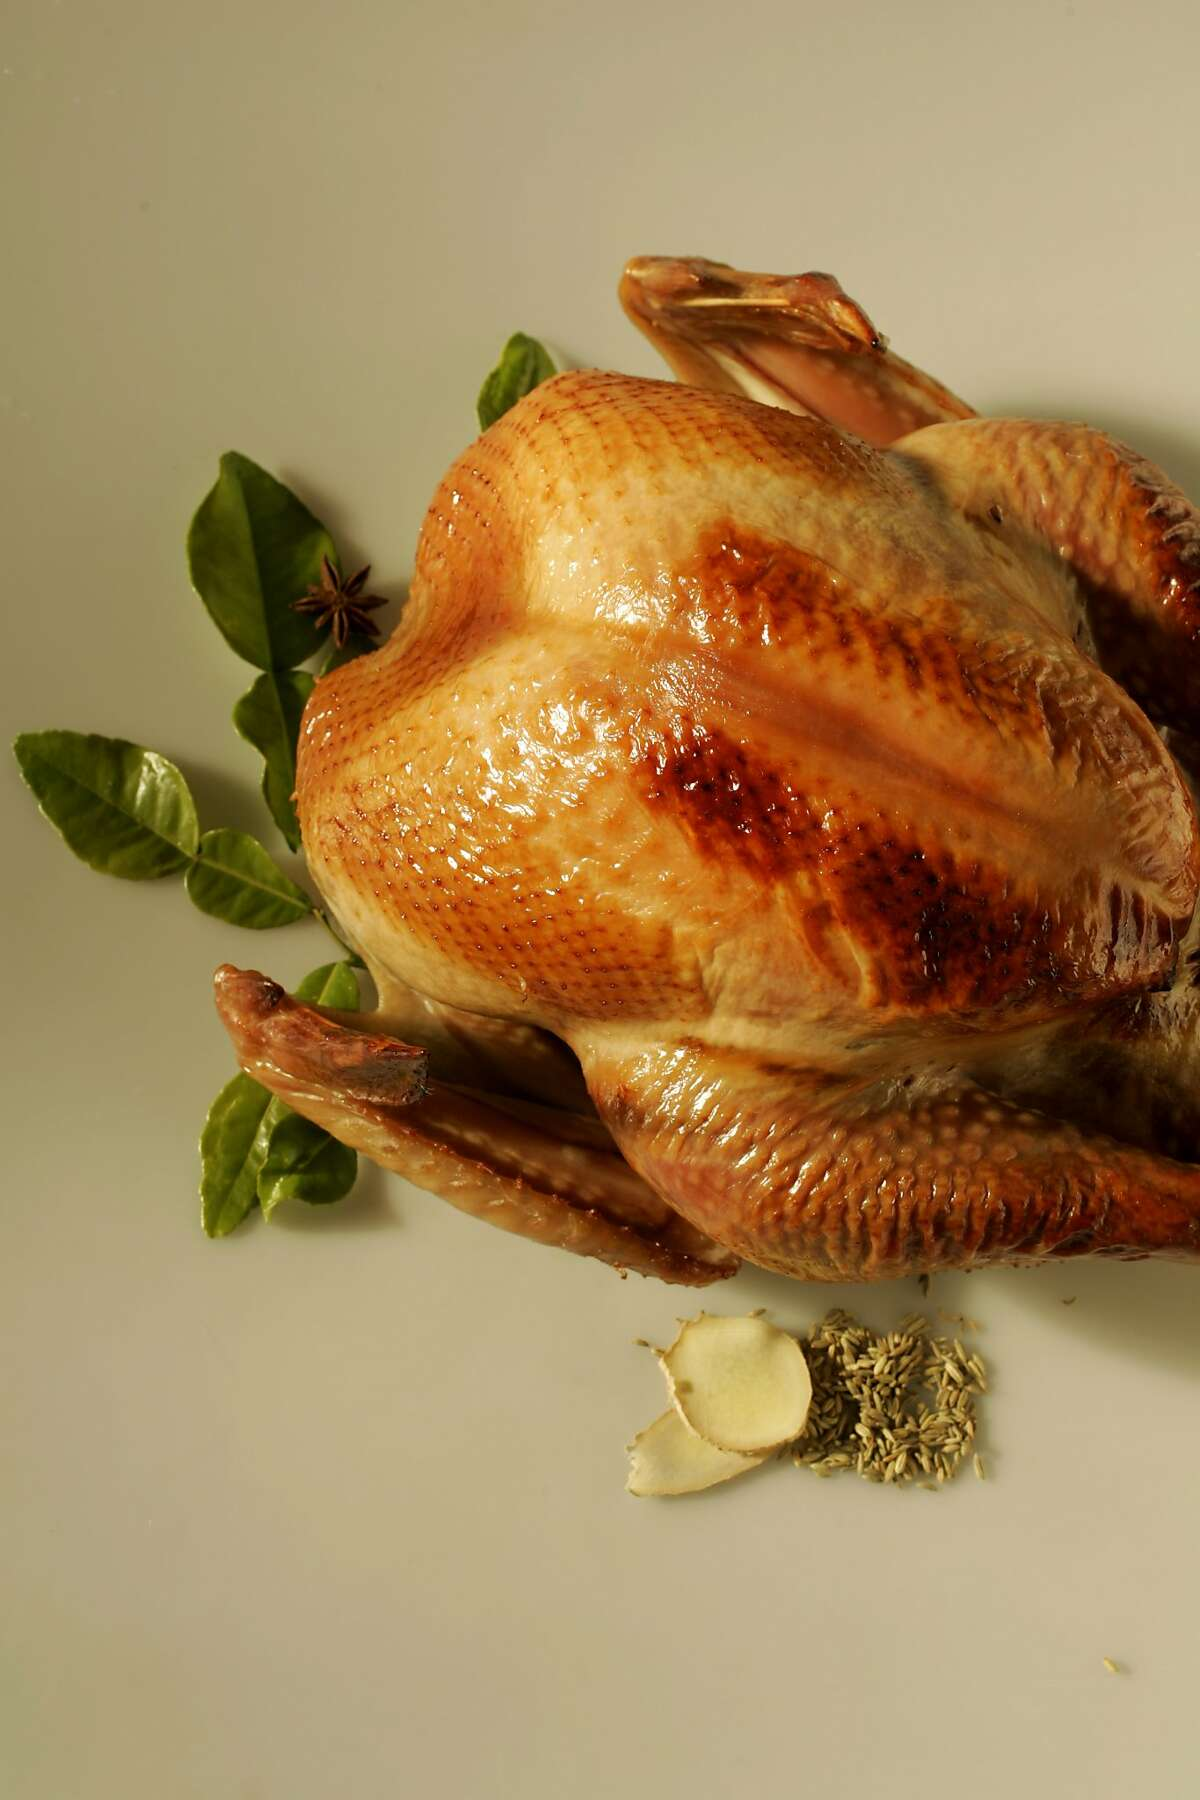 Thanksgiving food, styled by Kate Benfield. Photo of a roasted turkey on 10/30/04 in San Francisco.